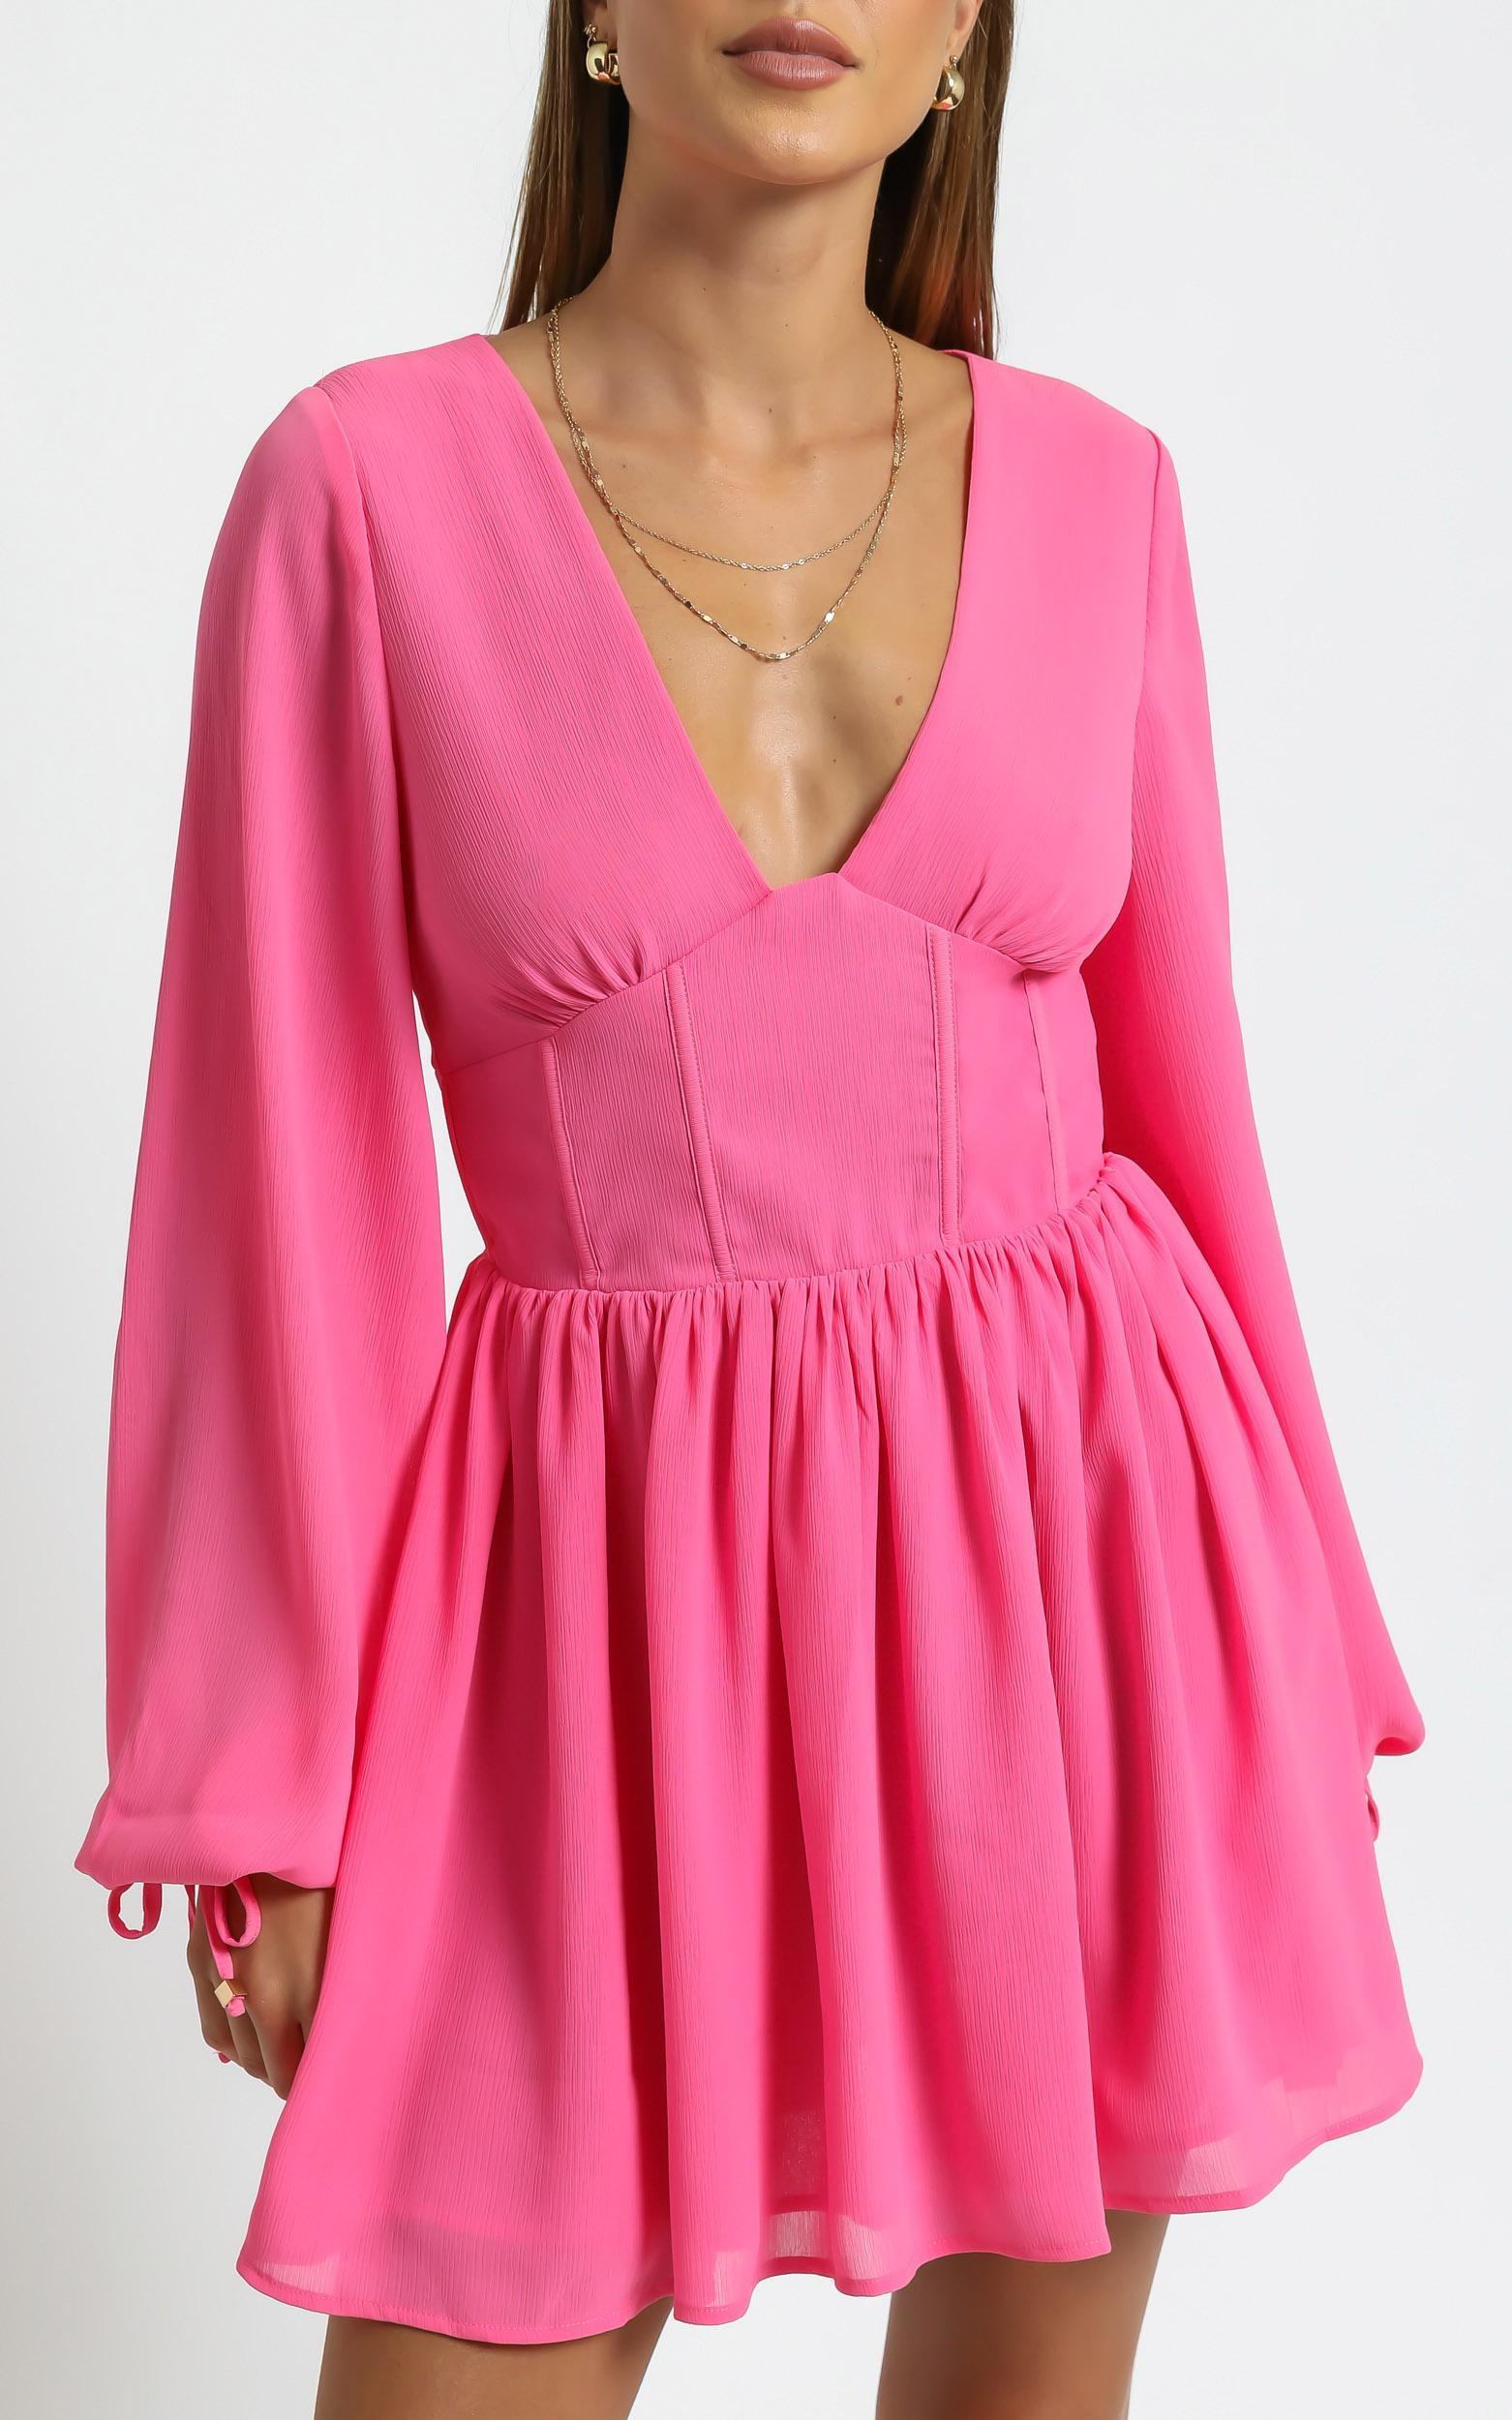 Calista Dress in Pink - 6 (XS), PNK1, hi-res image number null